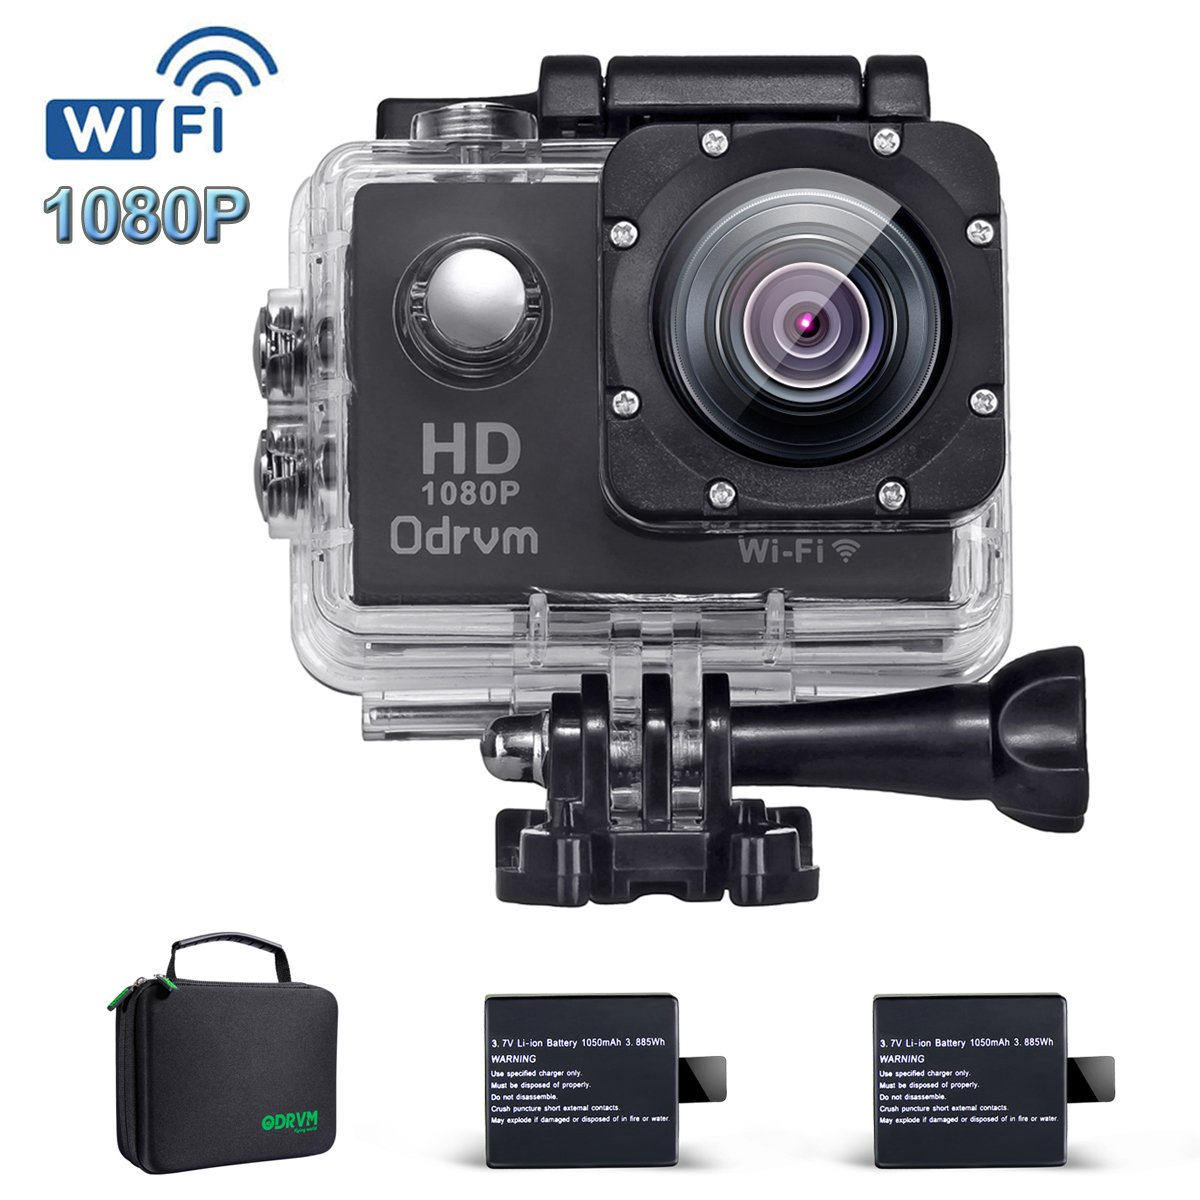 2.0-Inch WIFI HD 1080P Waterproof Action Camera Black 12MP Diving 30M Underwater Camera With 2PCS Battery, Helmet Cam Bicycle Sports Camera for Biking, Racing, Skiing, Motocross And Water Sports ODRVM F23-WIFI-CA-A